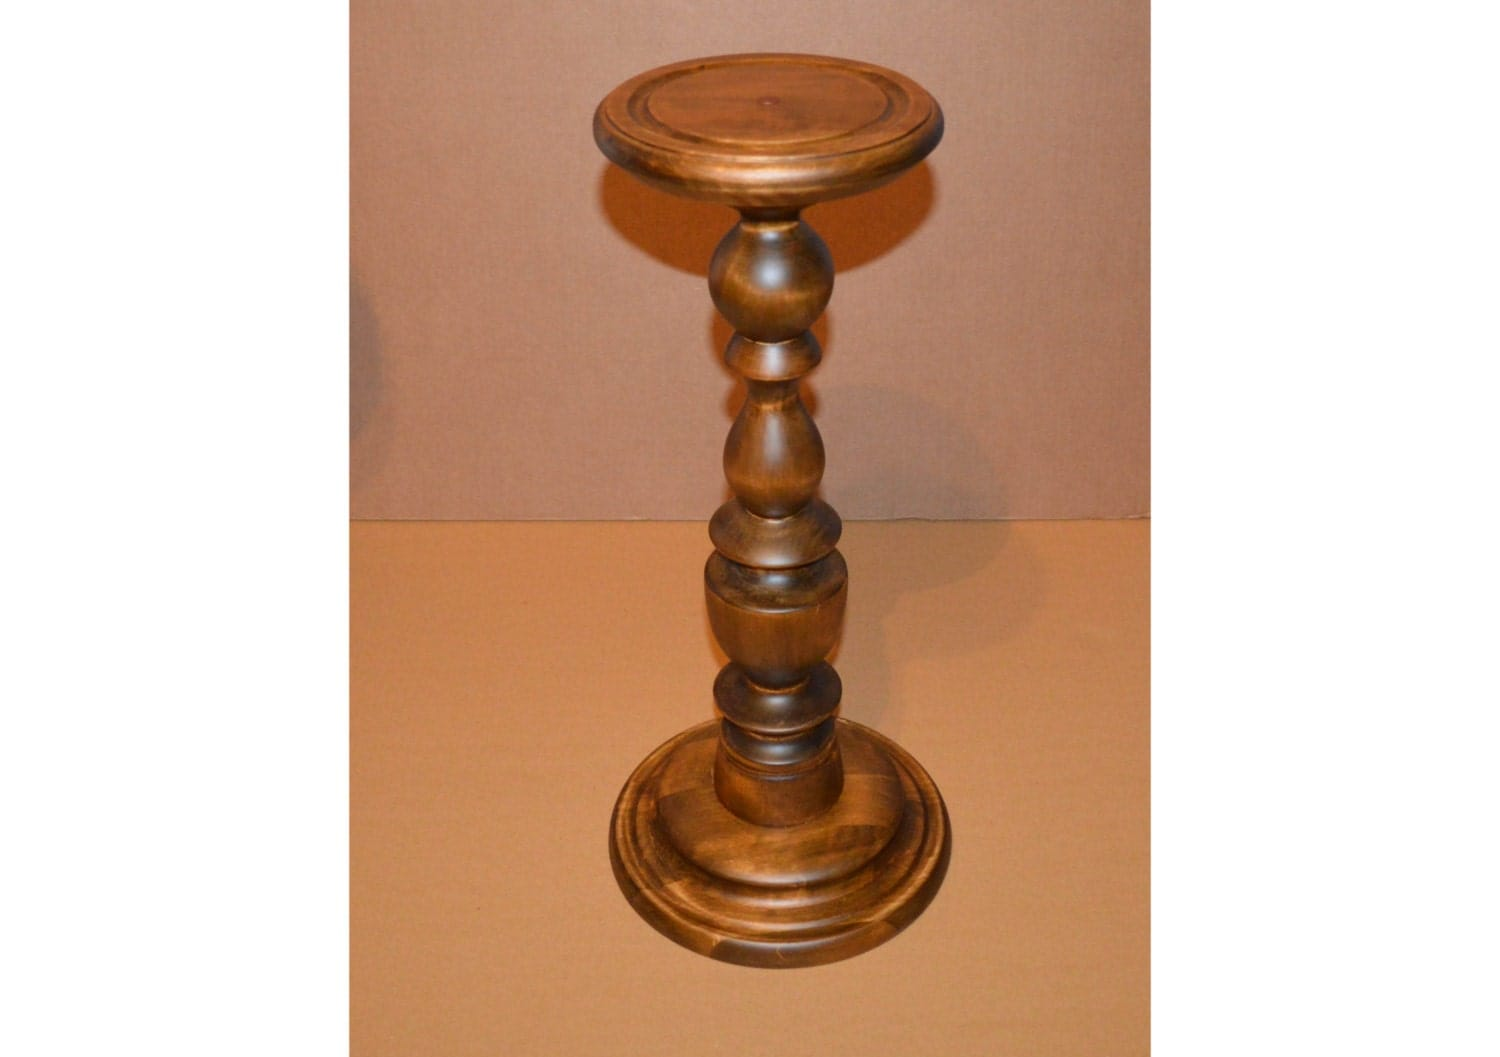 Rustic Small Fern Stand Plant Stand Wood Pedestal Table